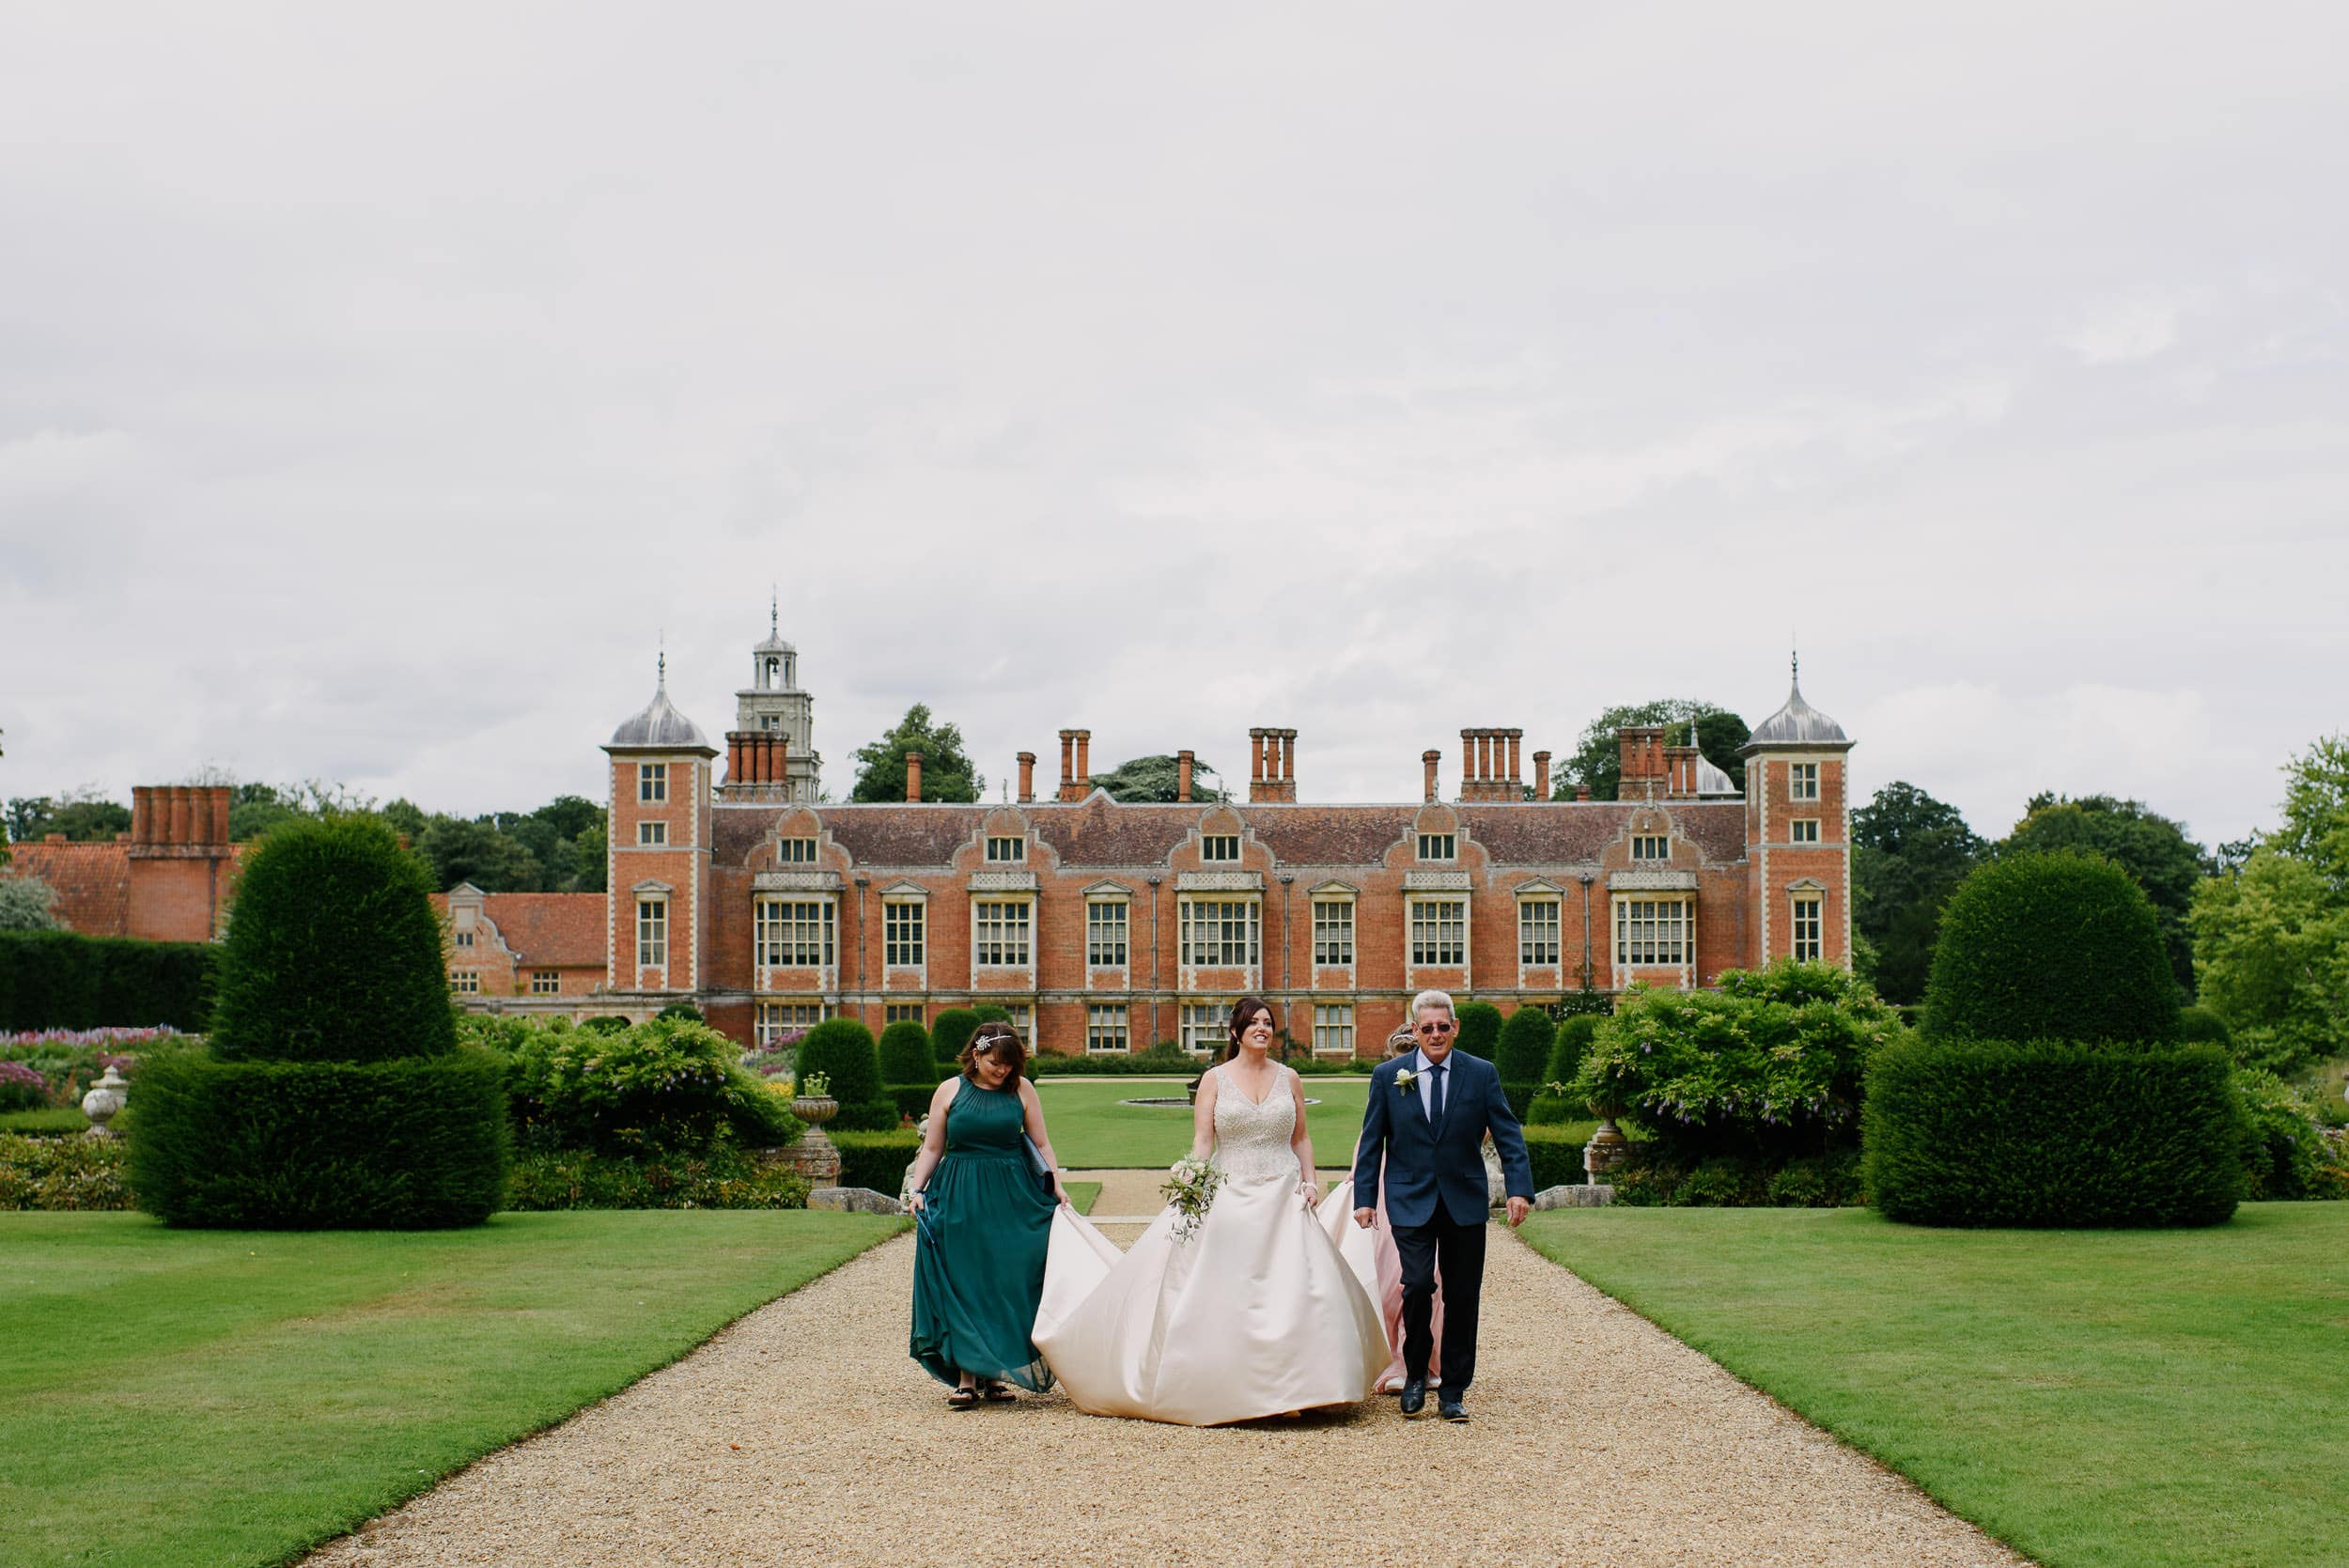 Suzy & Mike - Blickling Hall Wedding 11